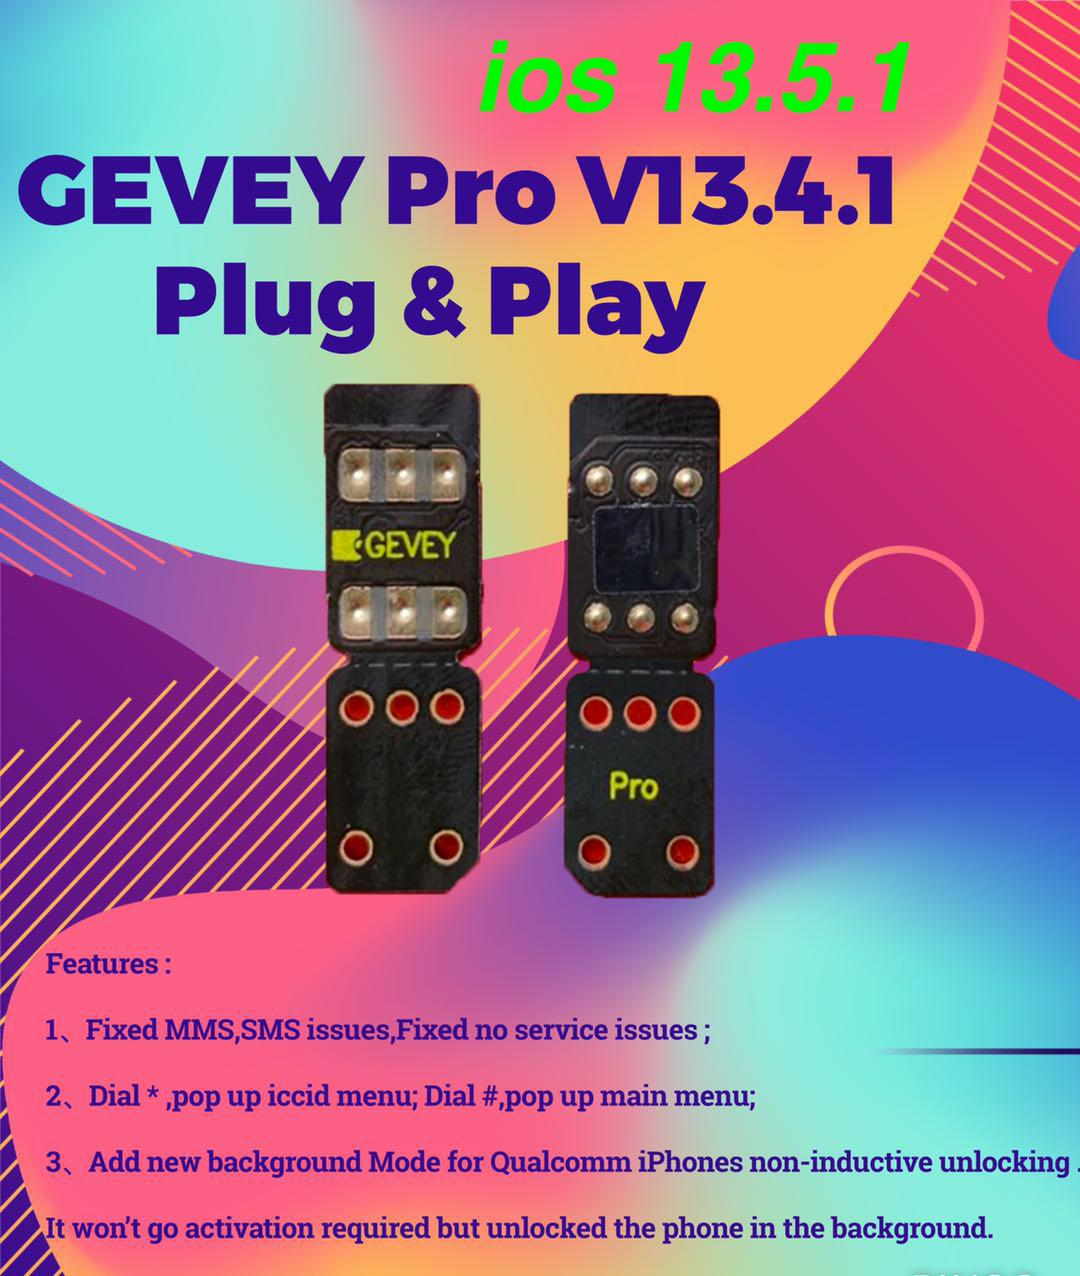 iOS 13.5.1 Perfect Gevey pro v13.4.1 ICCID+cyber unlock for iPhone11 pro max Xs max xr x /8/7/6/plus LTE MEXICO GHEANA NG GHANA AFRICA US UK